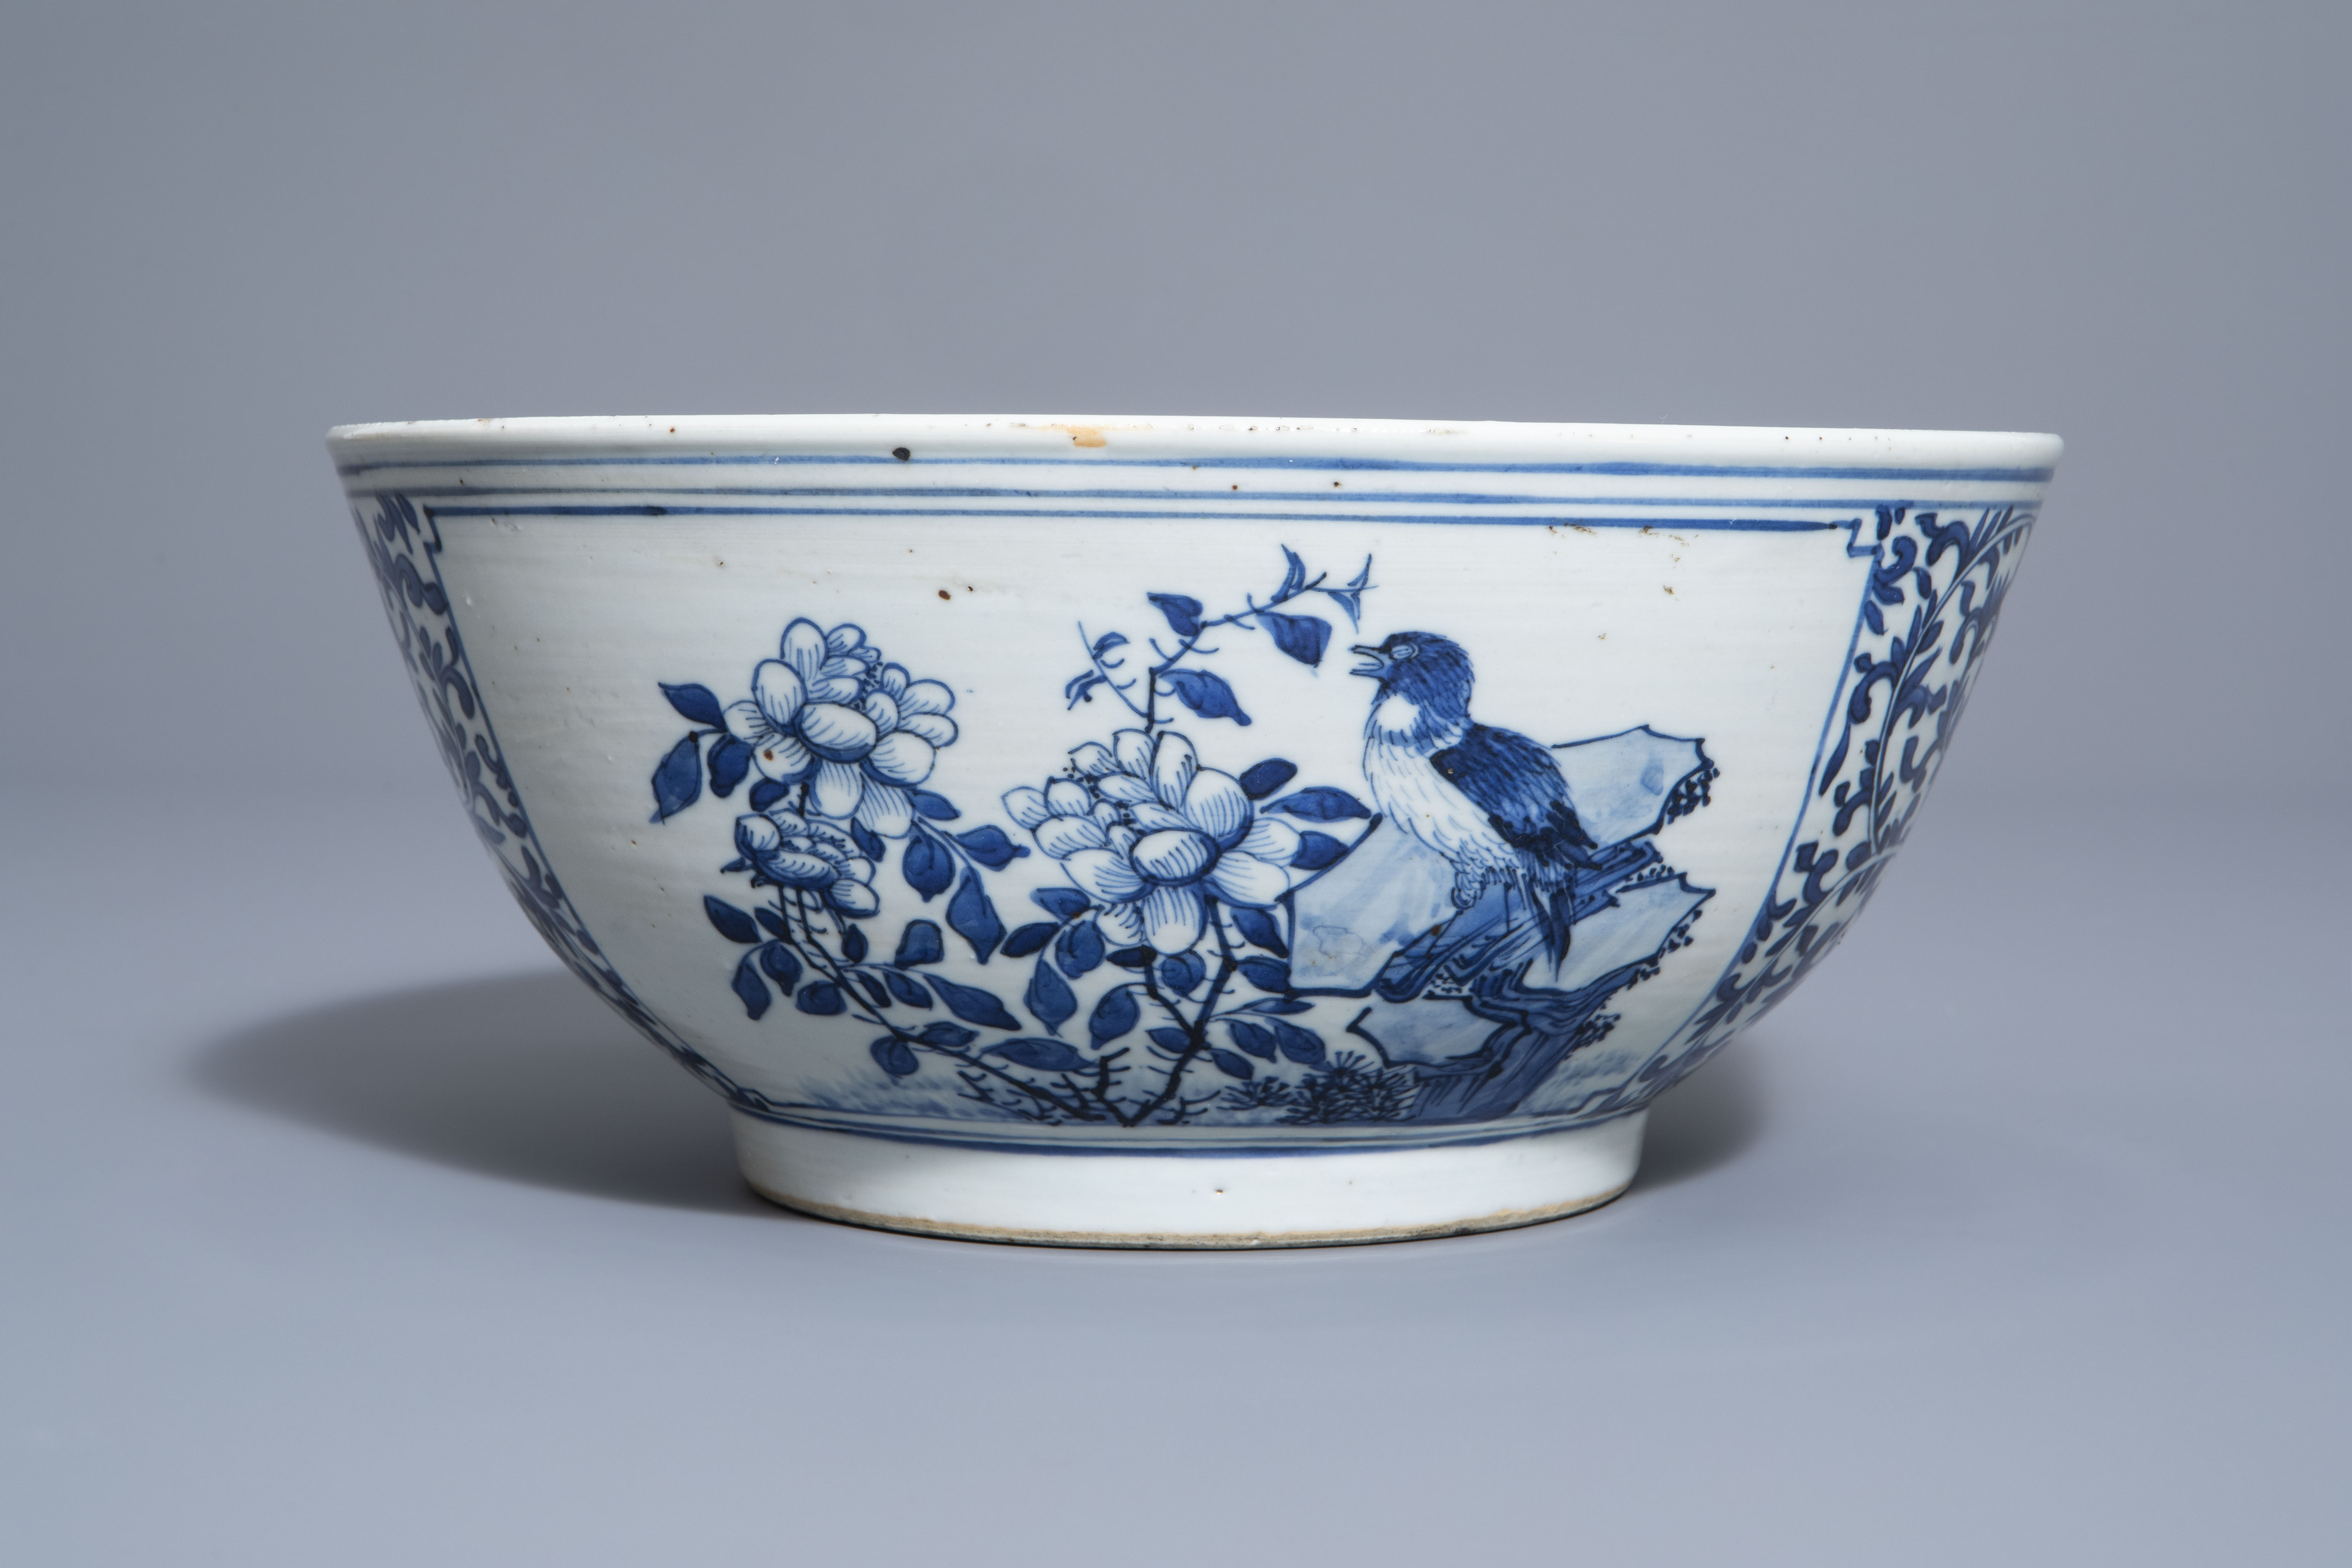 A Chinese blue and white bowl with birds and flowers, 19th C. - Image 4 of 7